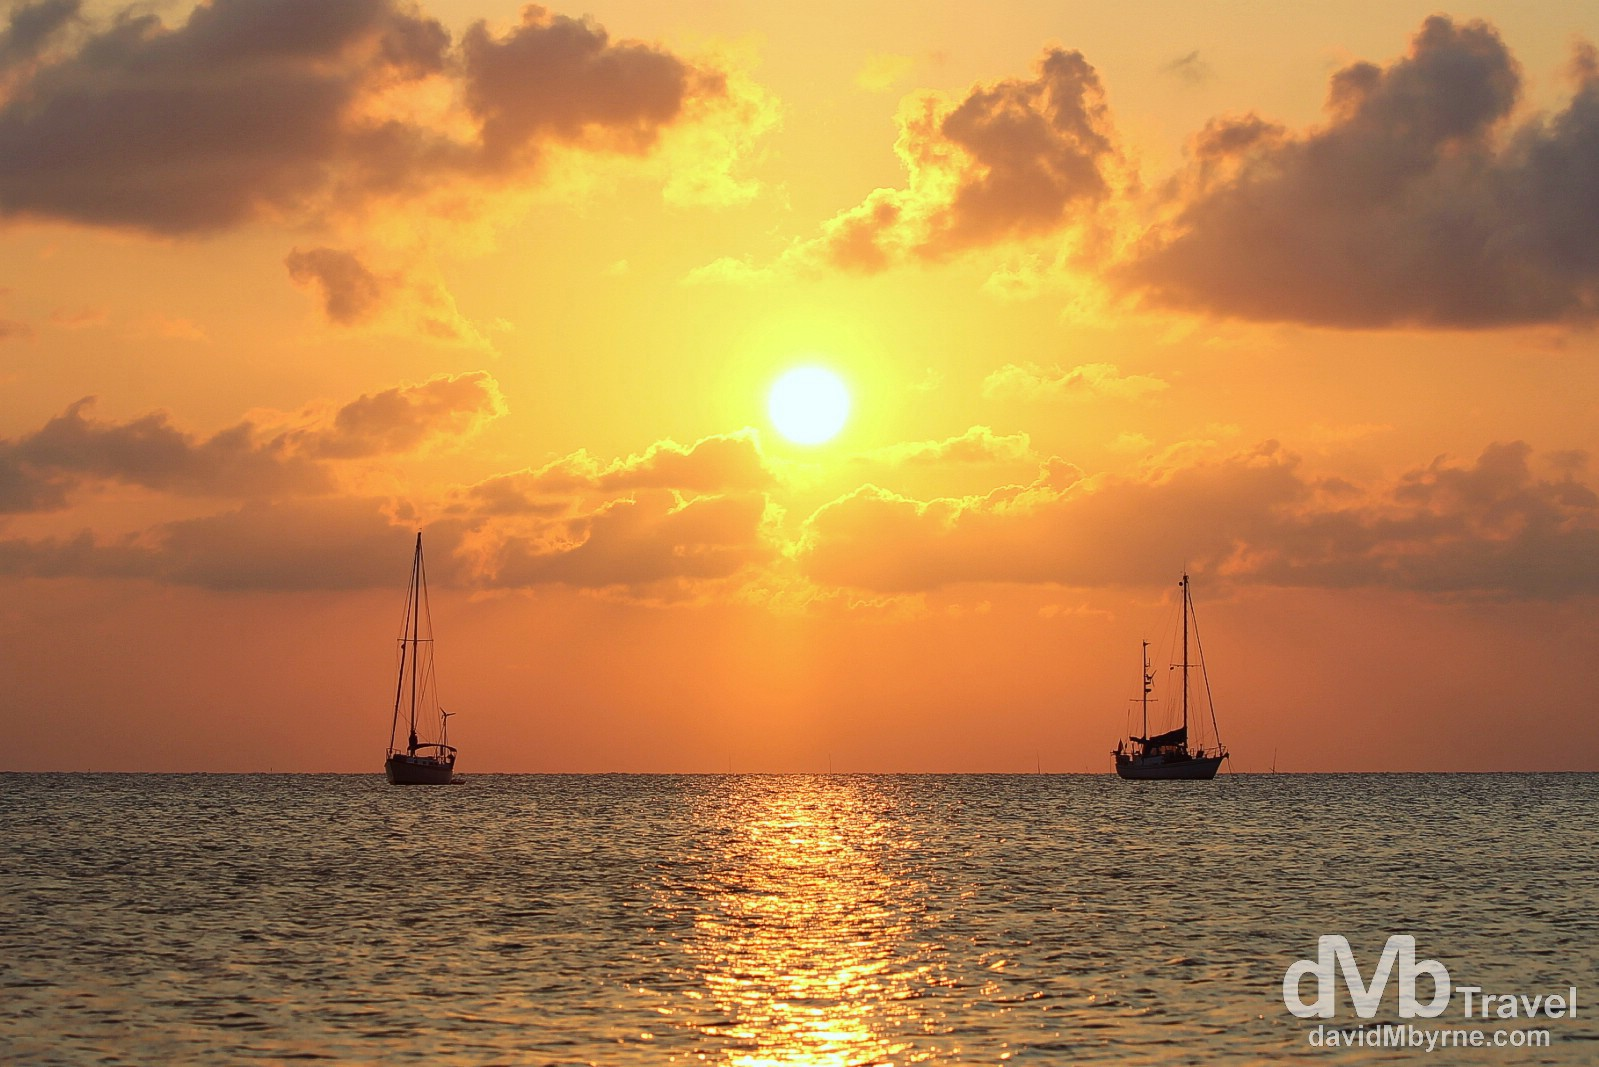 Sunset on Caye Caulker, Belize. May 15th 2013.